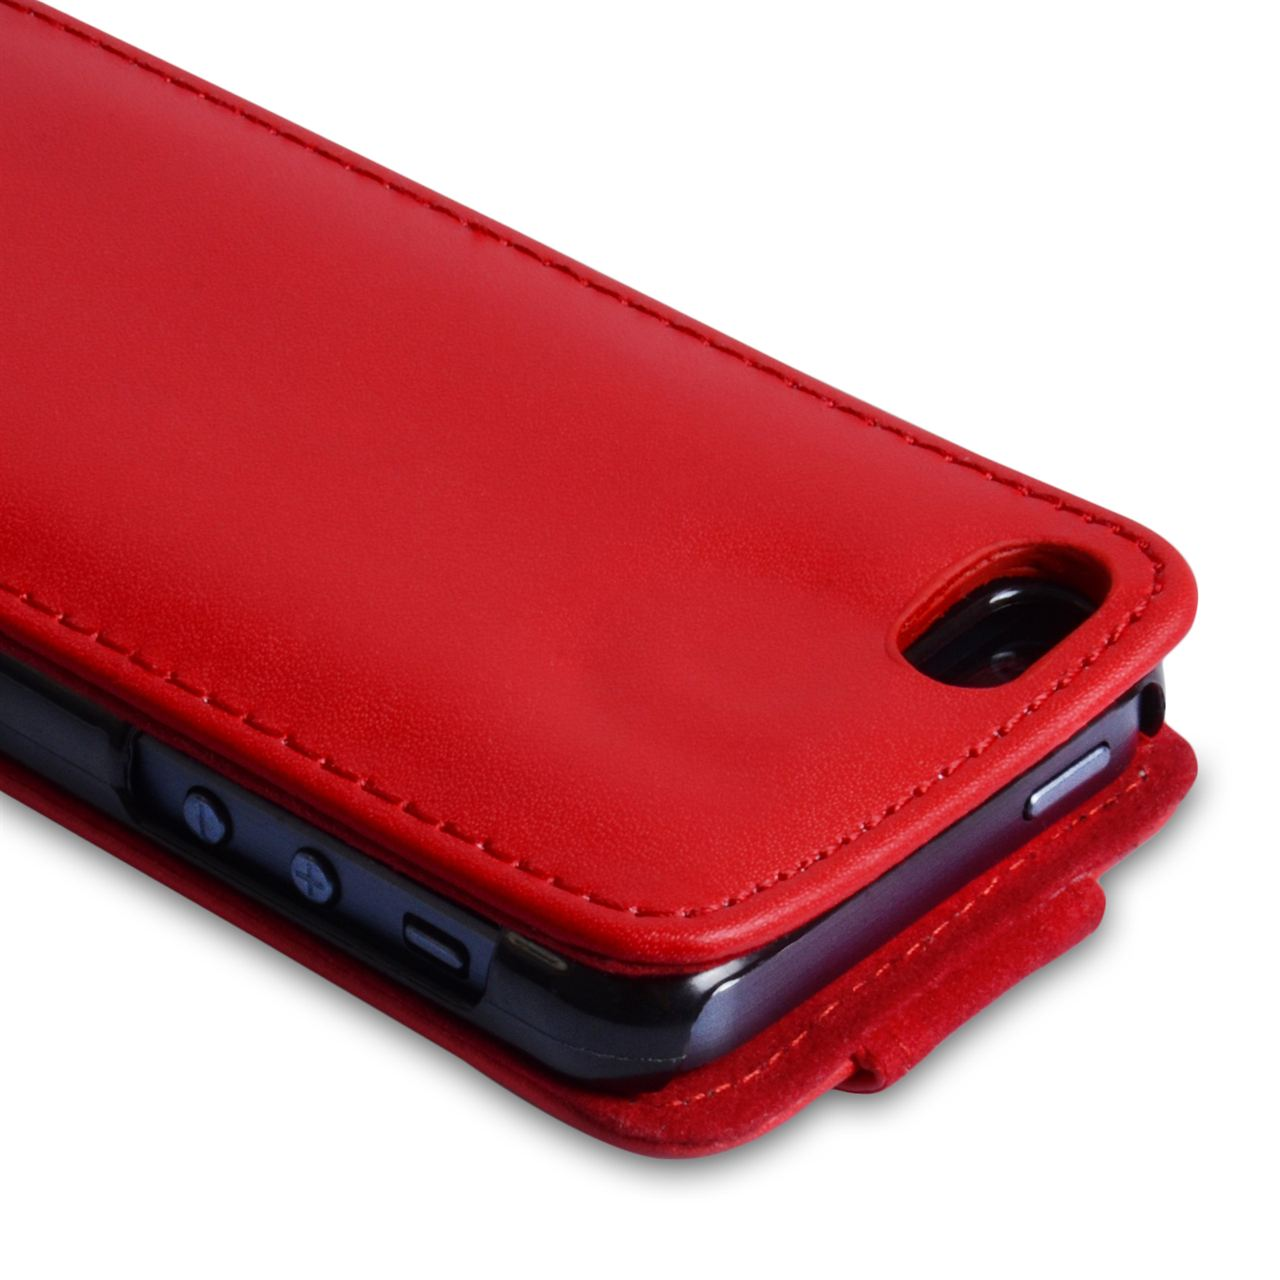 YouSave Accessories iPhone 5C Leather Effect Flip Case - Red